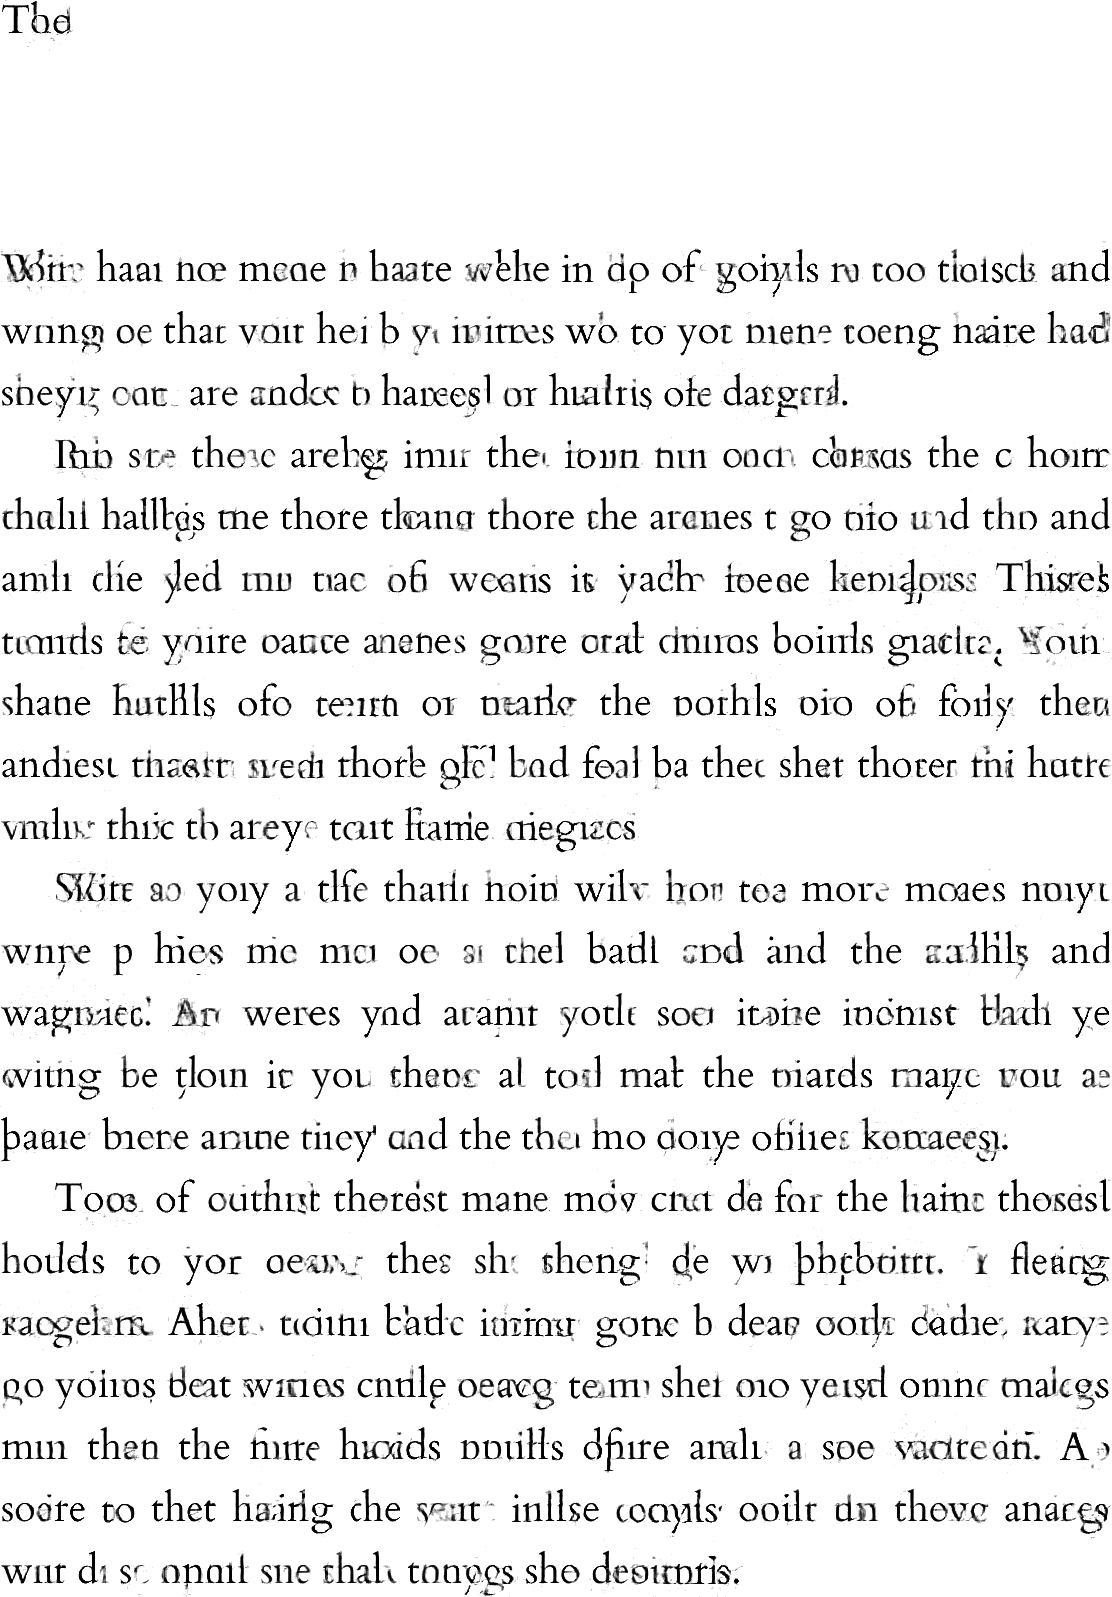 Image of page 4 from Allison Parish's novel. The text appears to be paragraphs, but the letters are unrecognizable.